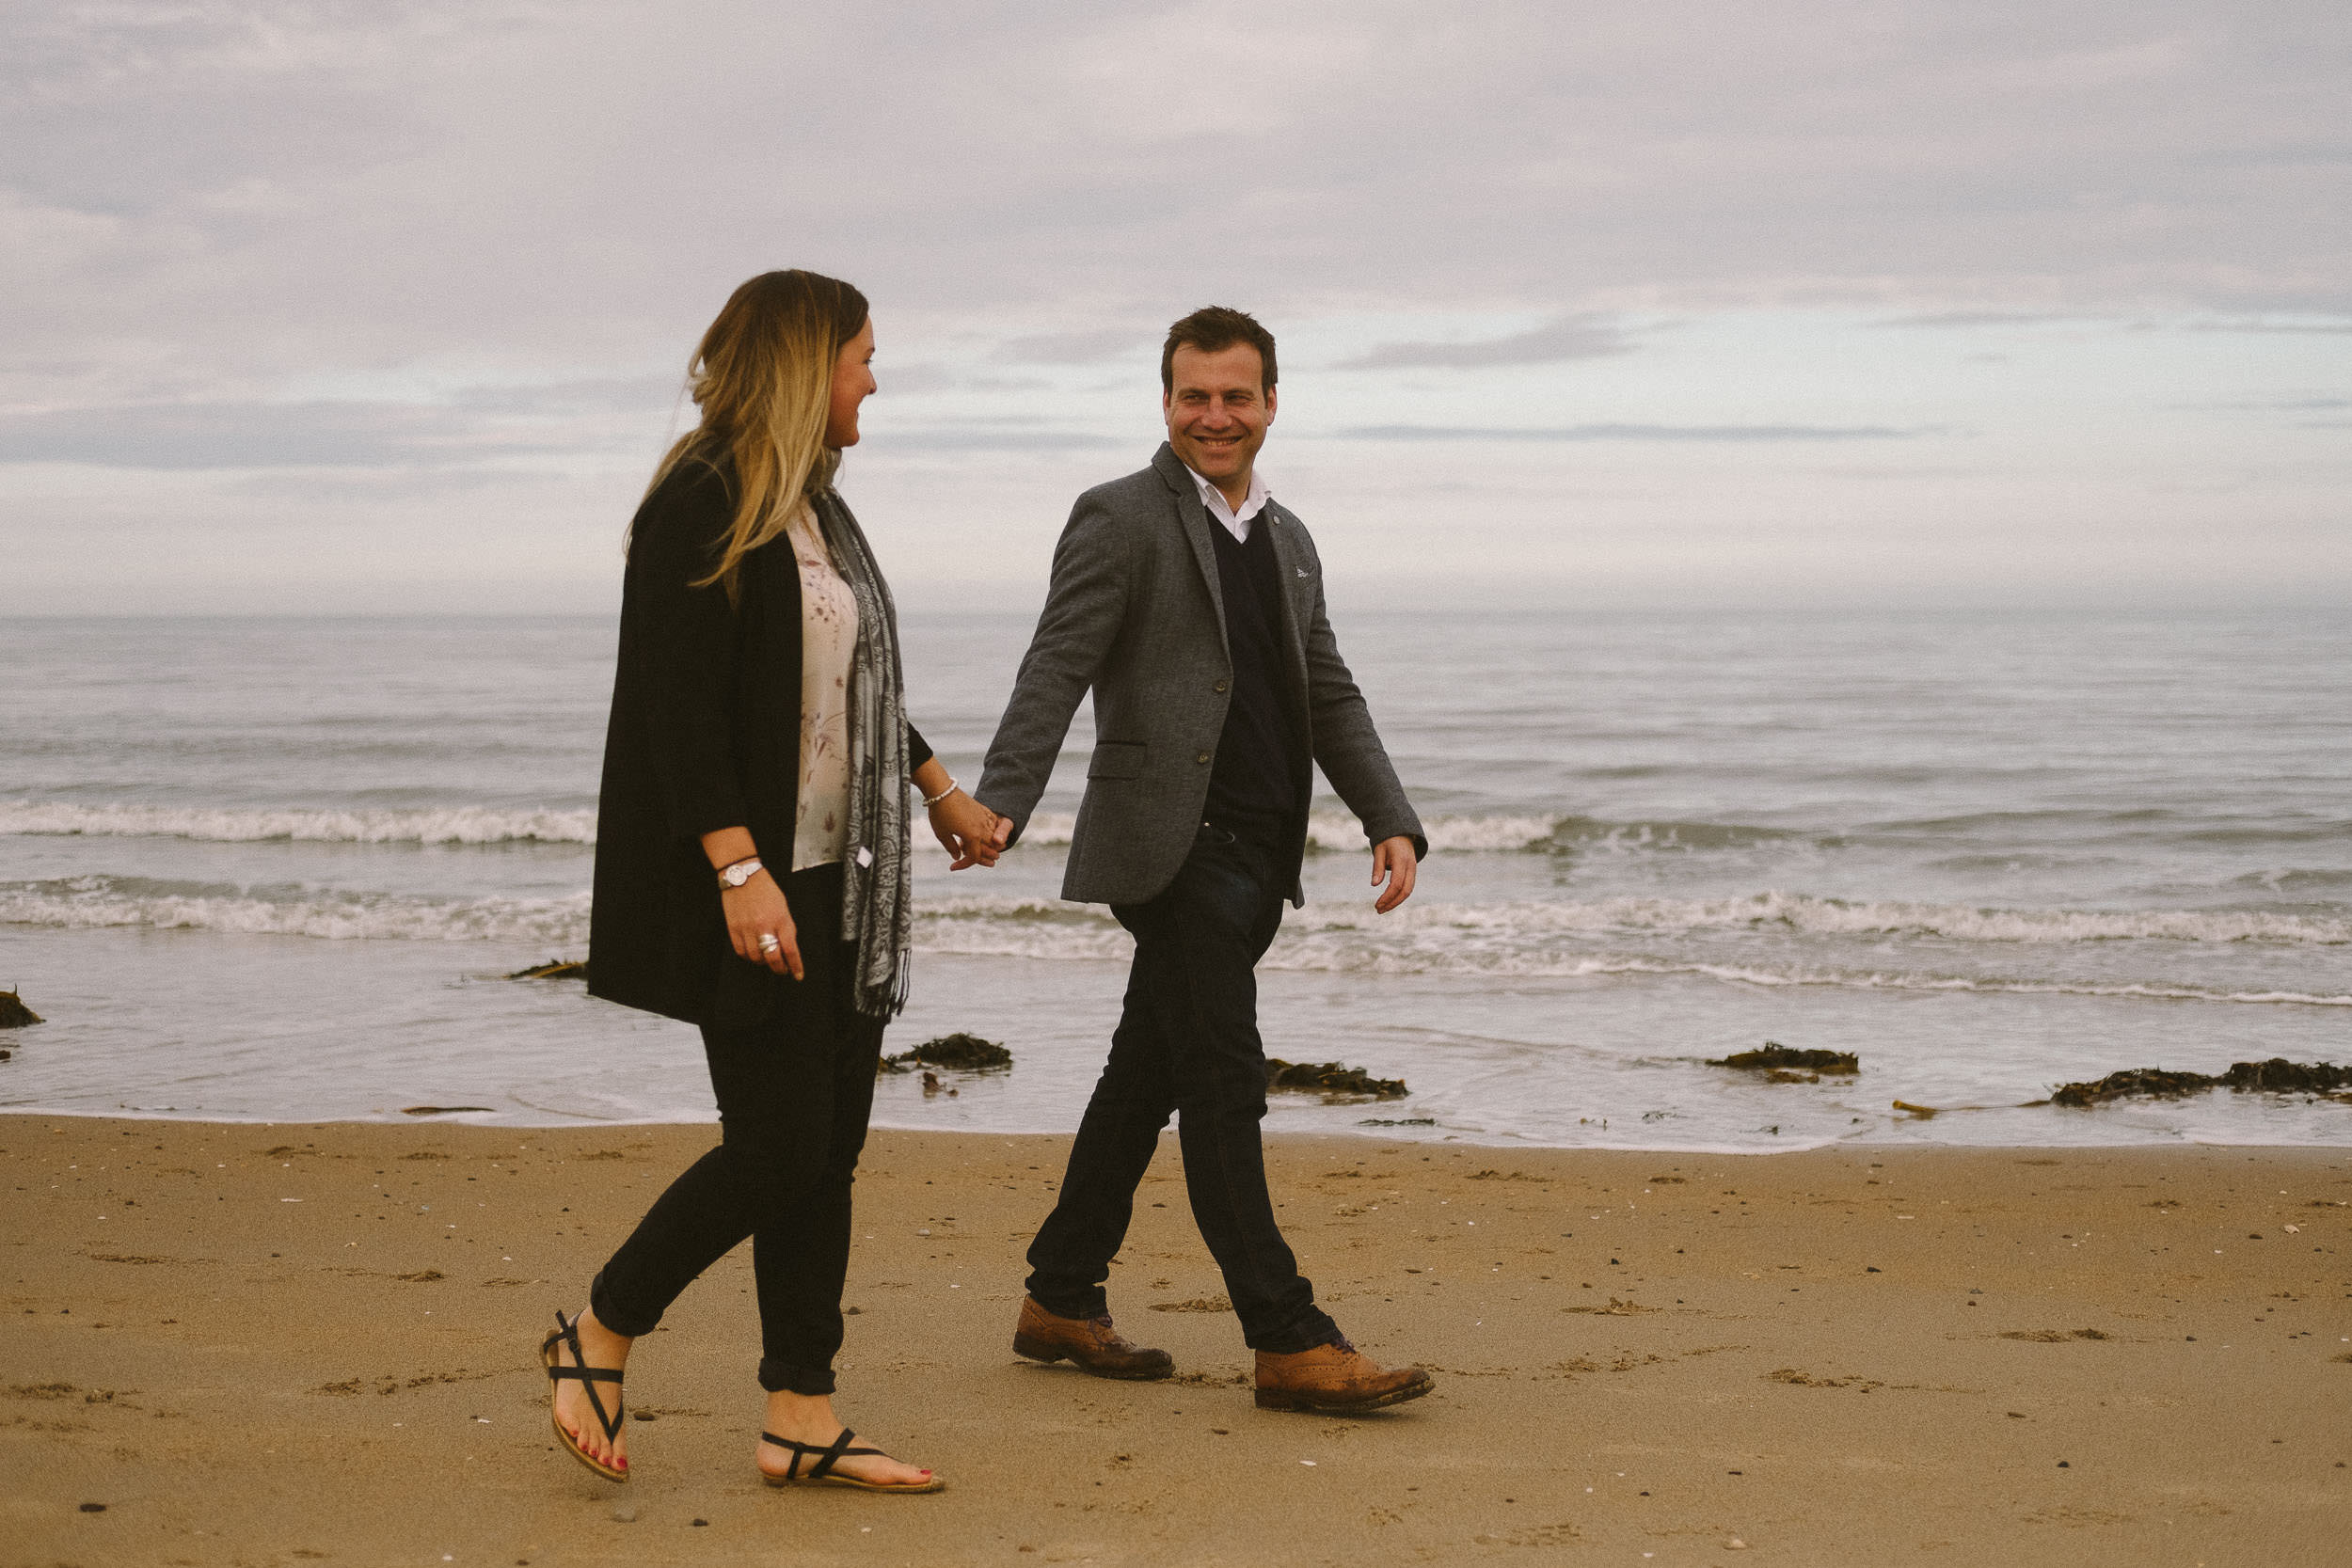 A couple walking on a beach holding hands and smiling at each other